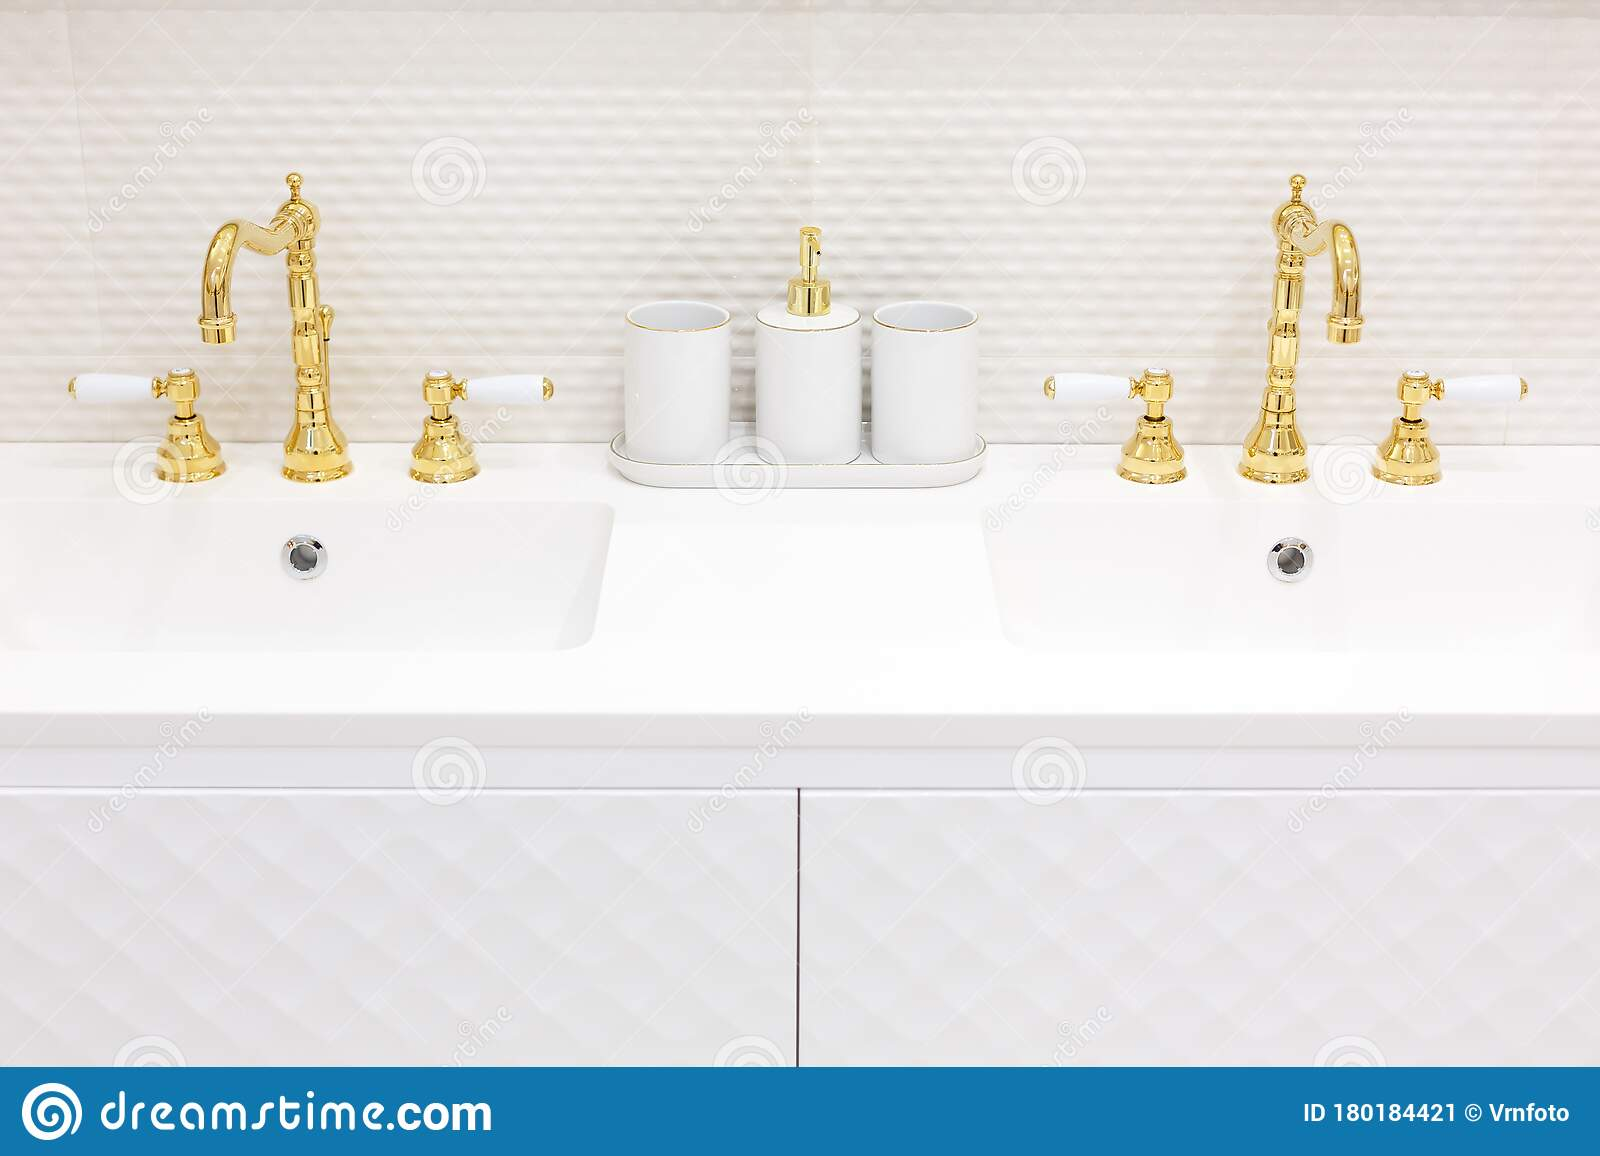 Bathroom Faucet Made Of Gold Antique Style Stock Image Image Of Antique House 180184421